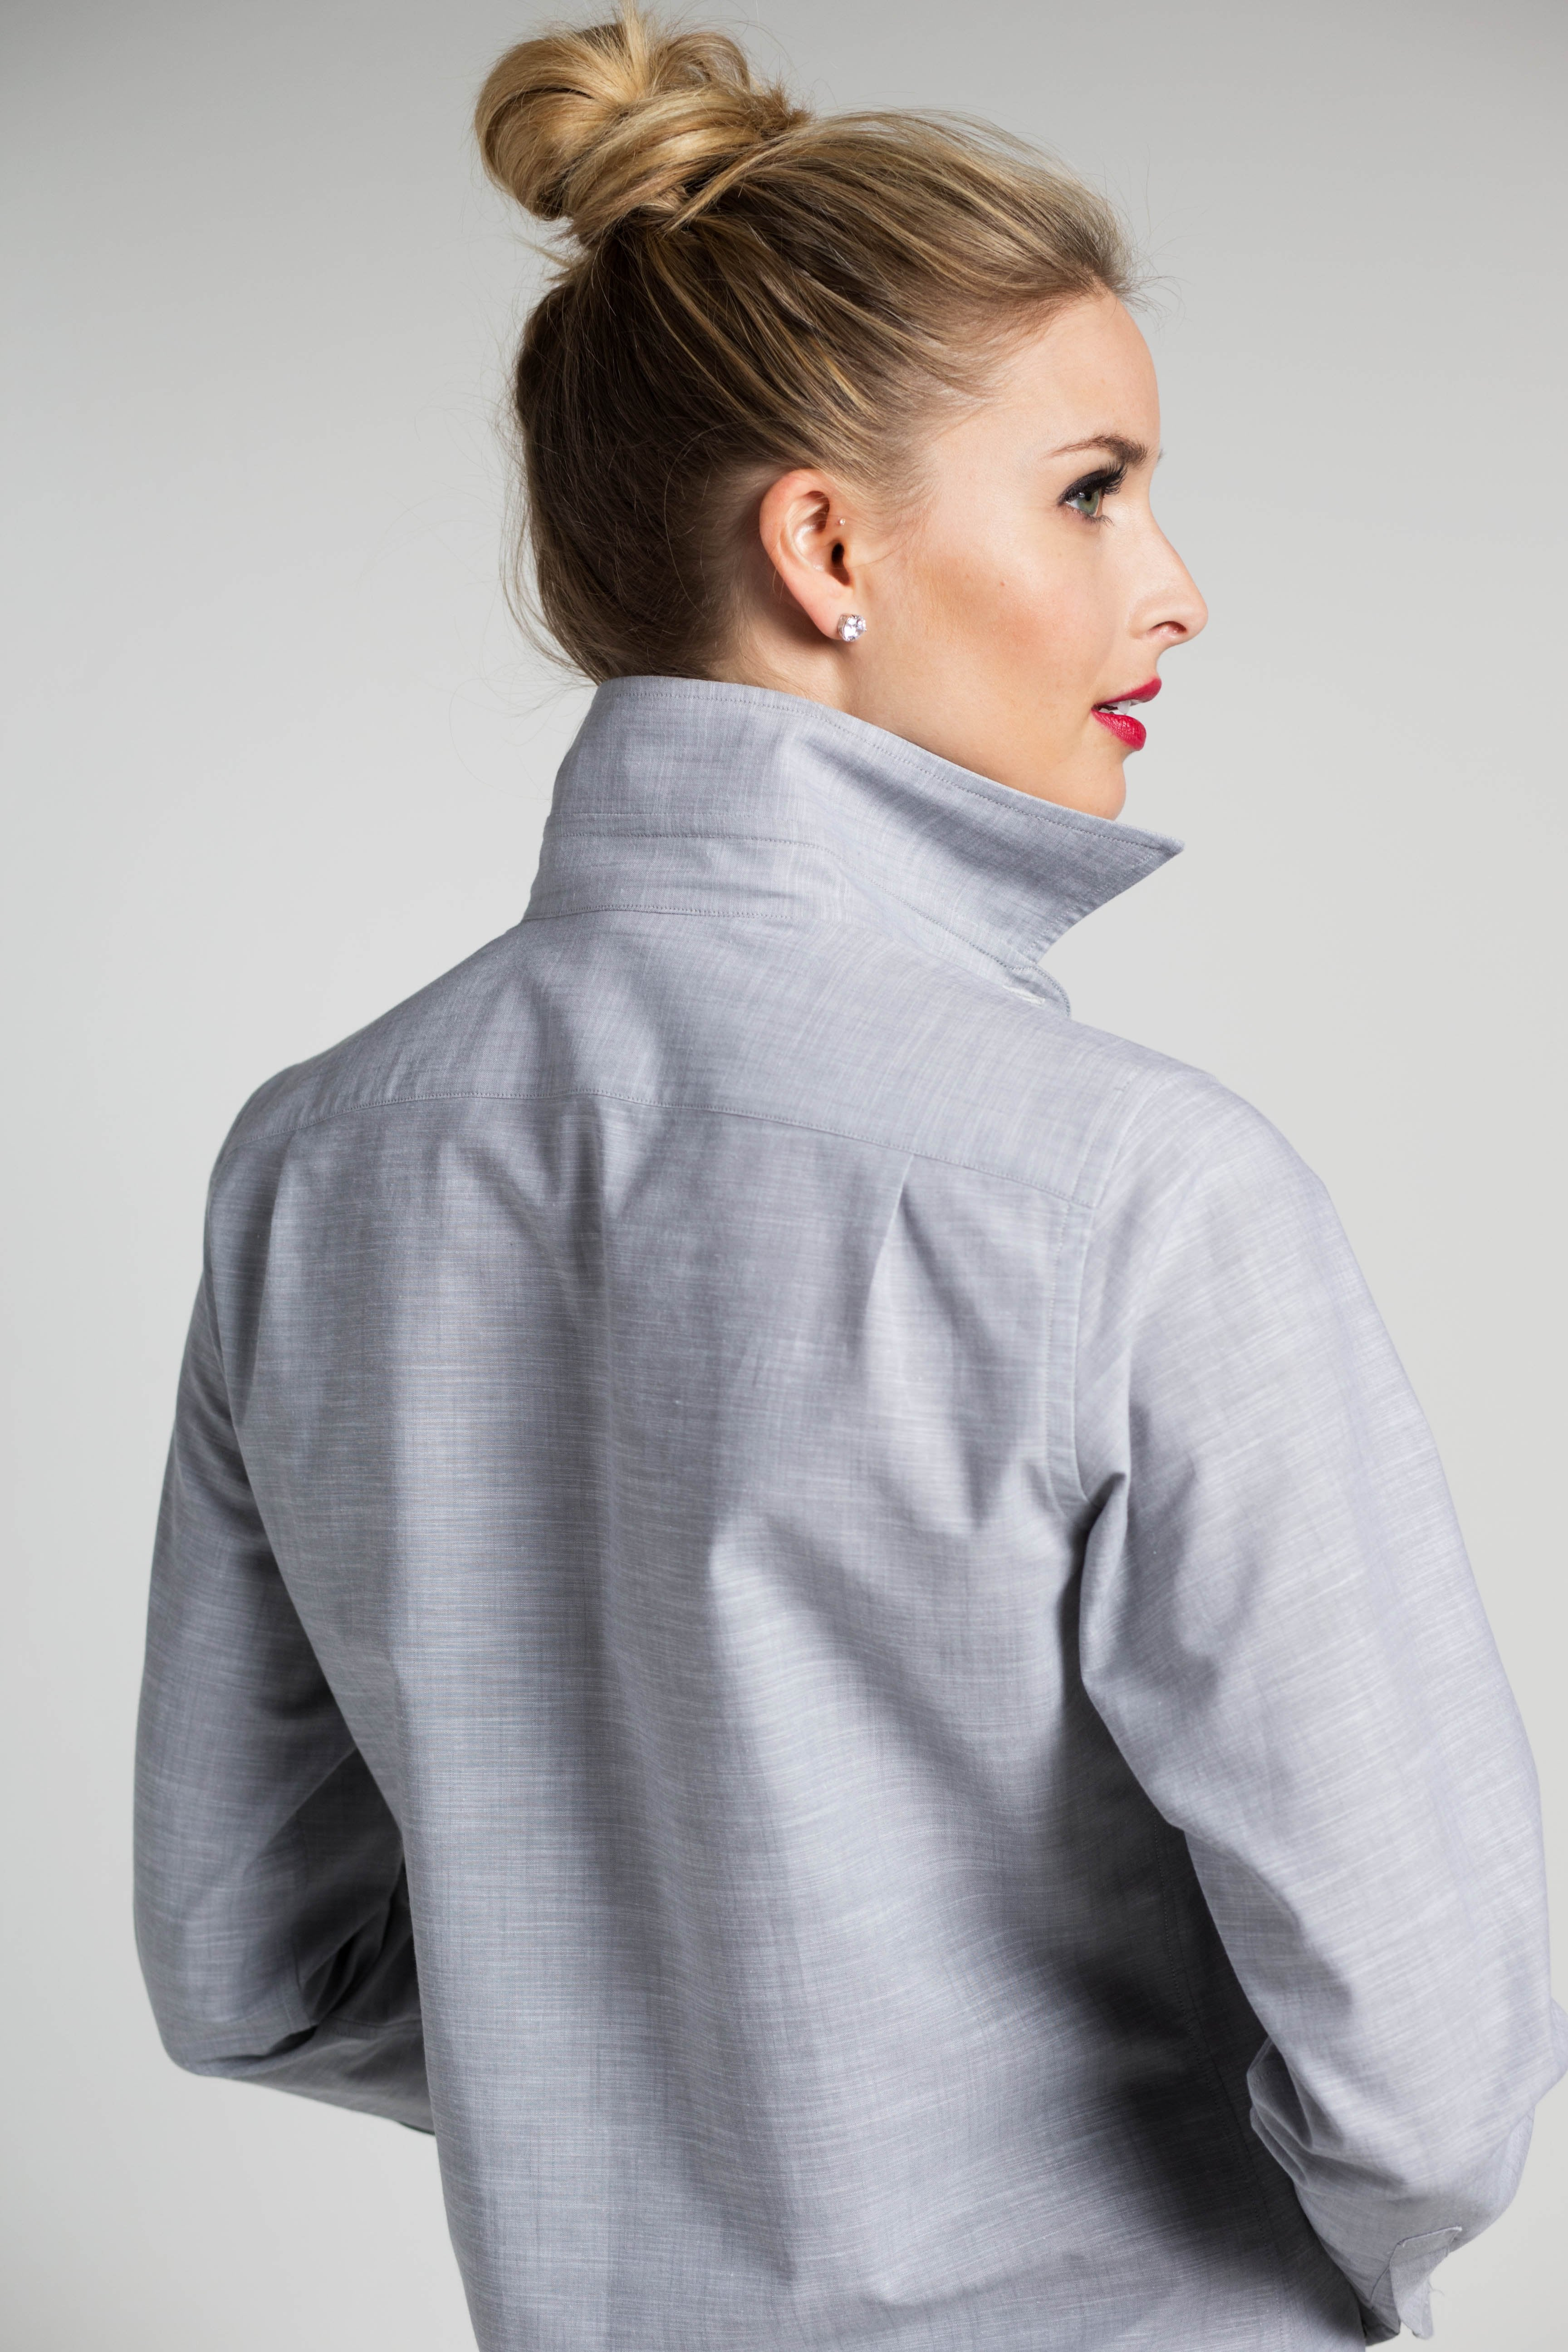 Weekend Shirt in Grey Expectations